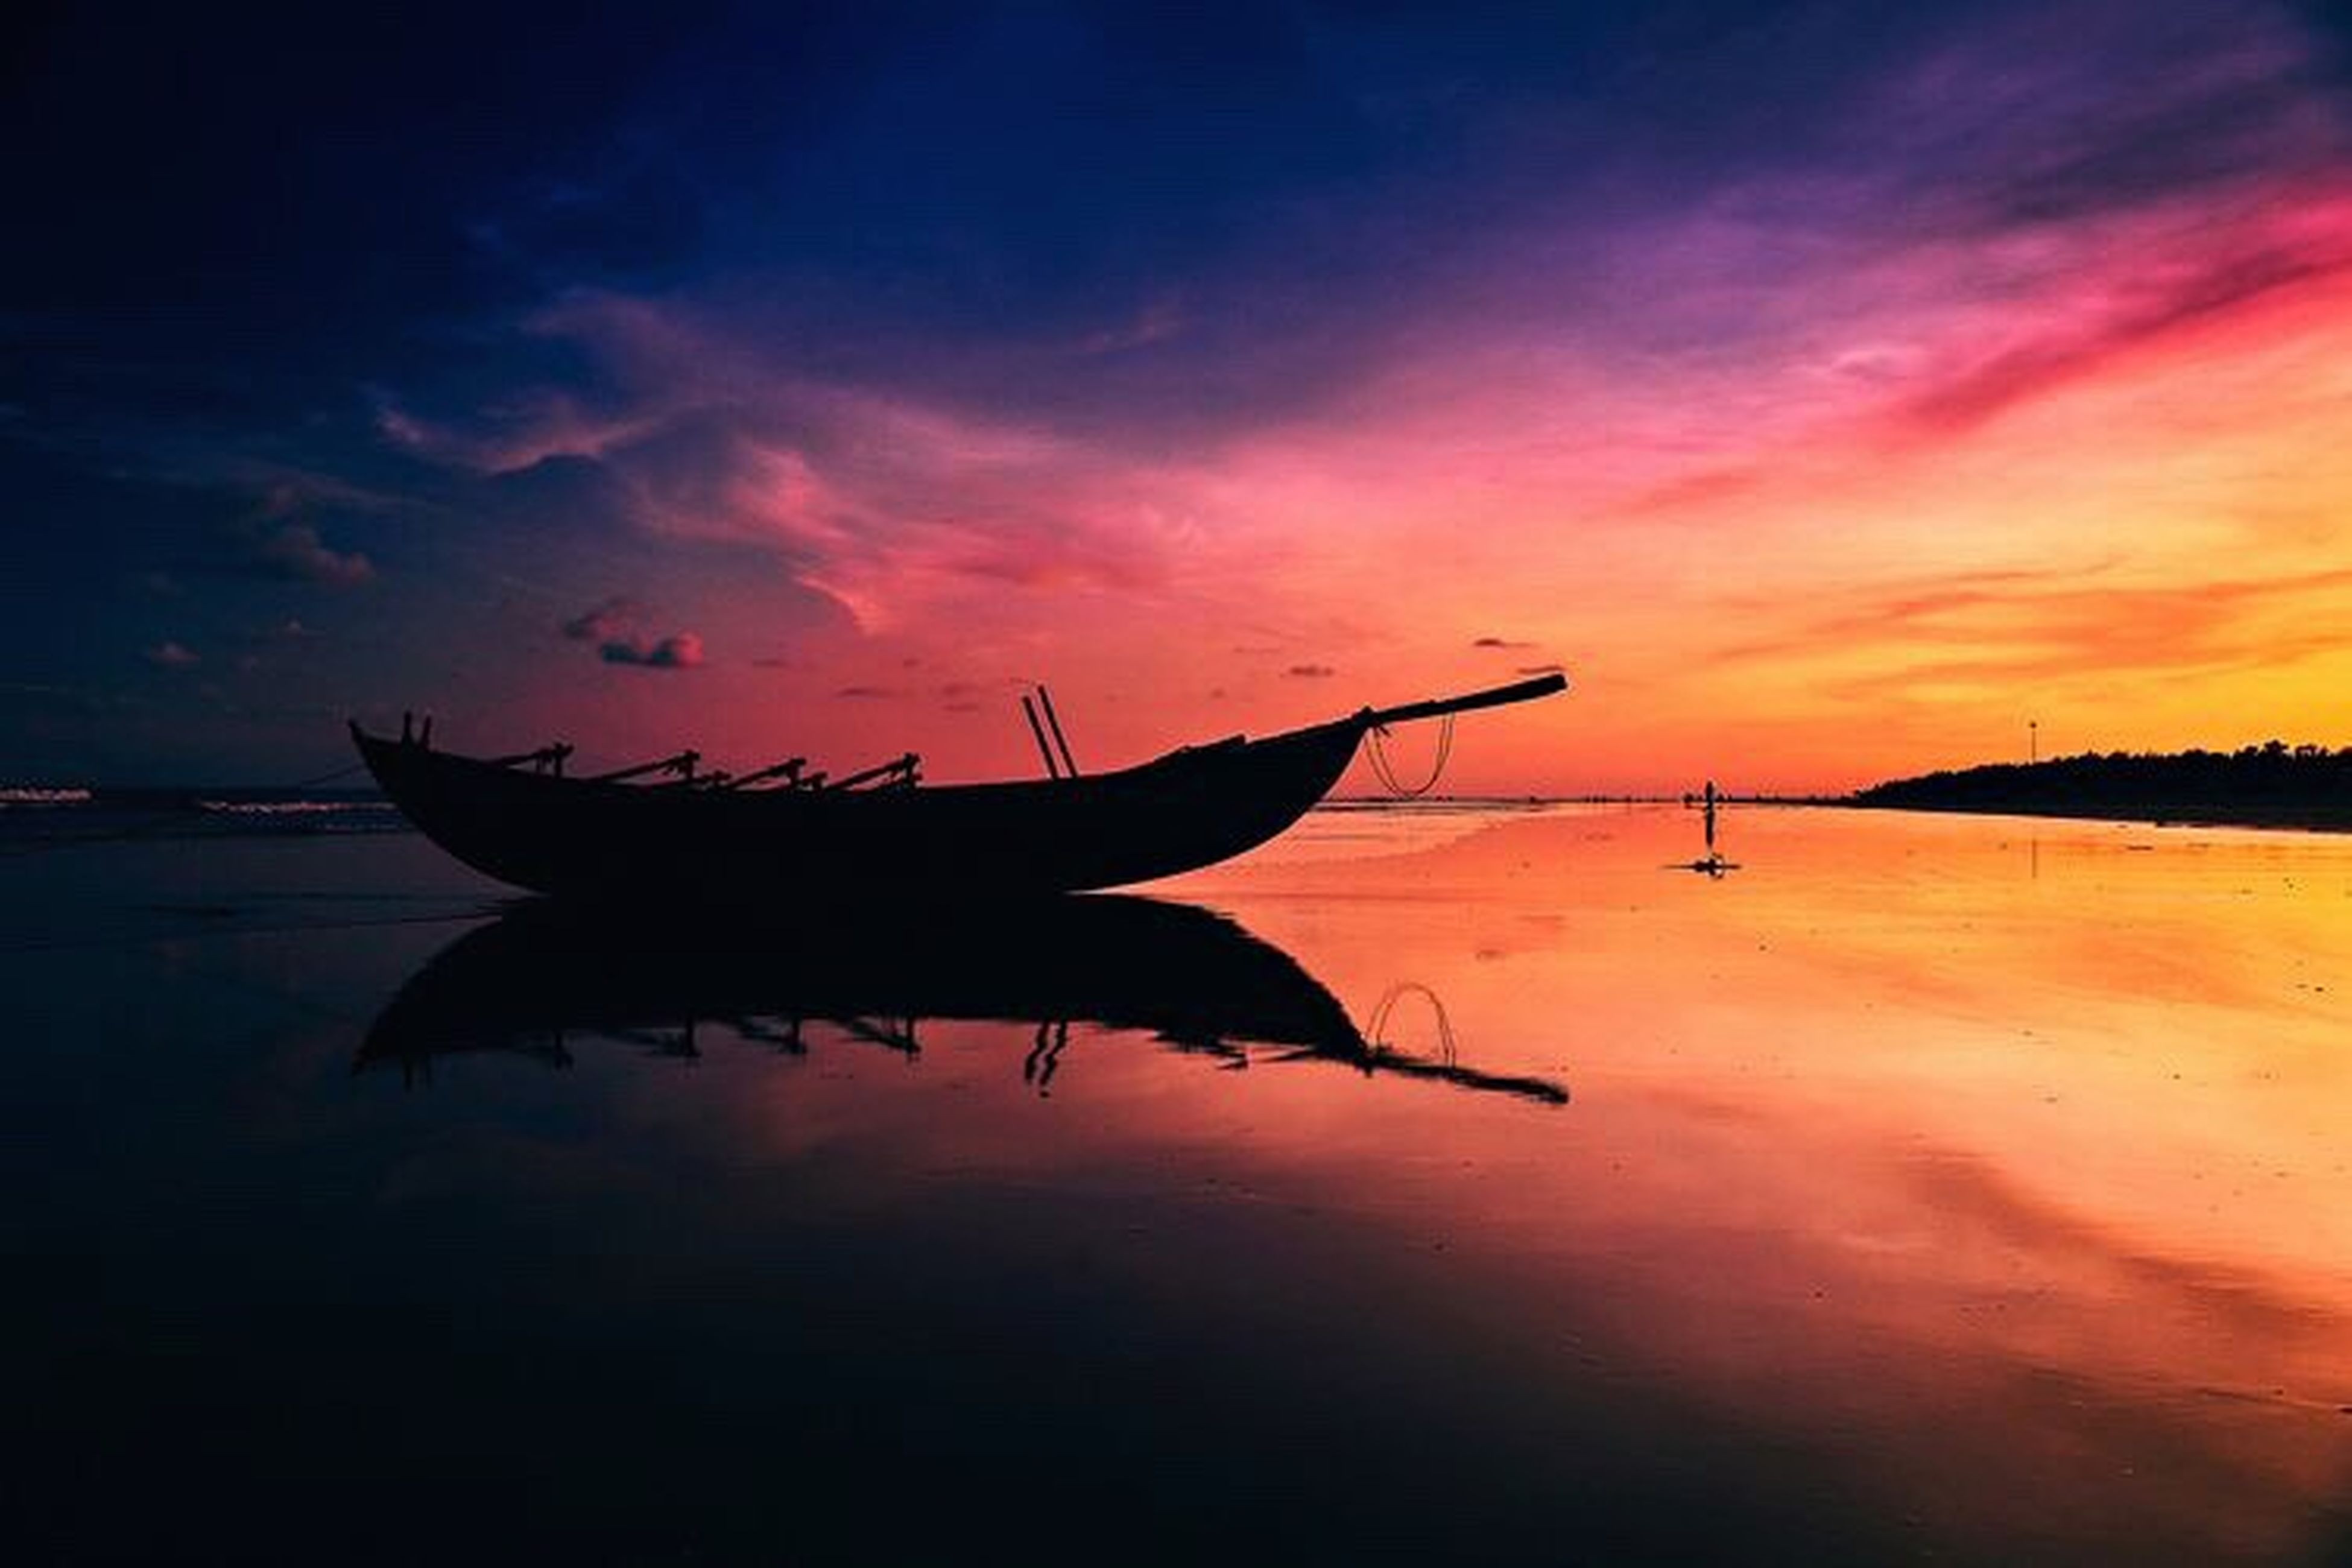 sunset, animal themes, orange color, water, sky, animals in the wild, one animal, wildlife, sea, reflection, flying, silhouette, beauty in nature, nature, cloud - sky, waterfront, scenics, spread wings, tranquility, outdoors